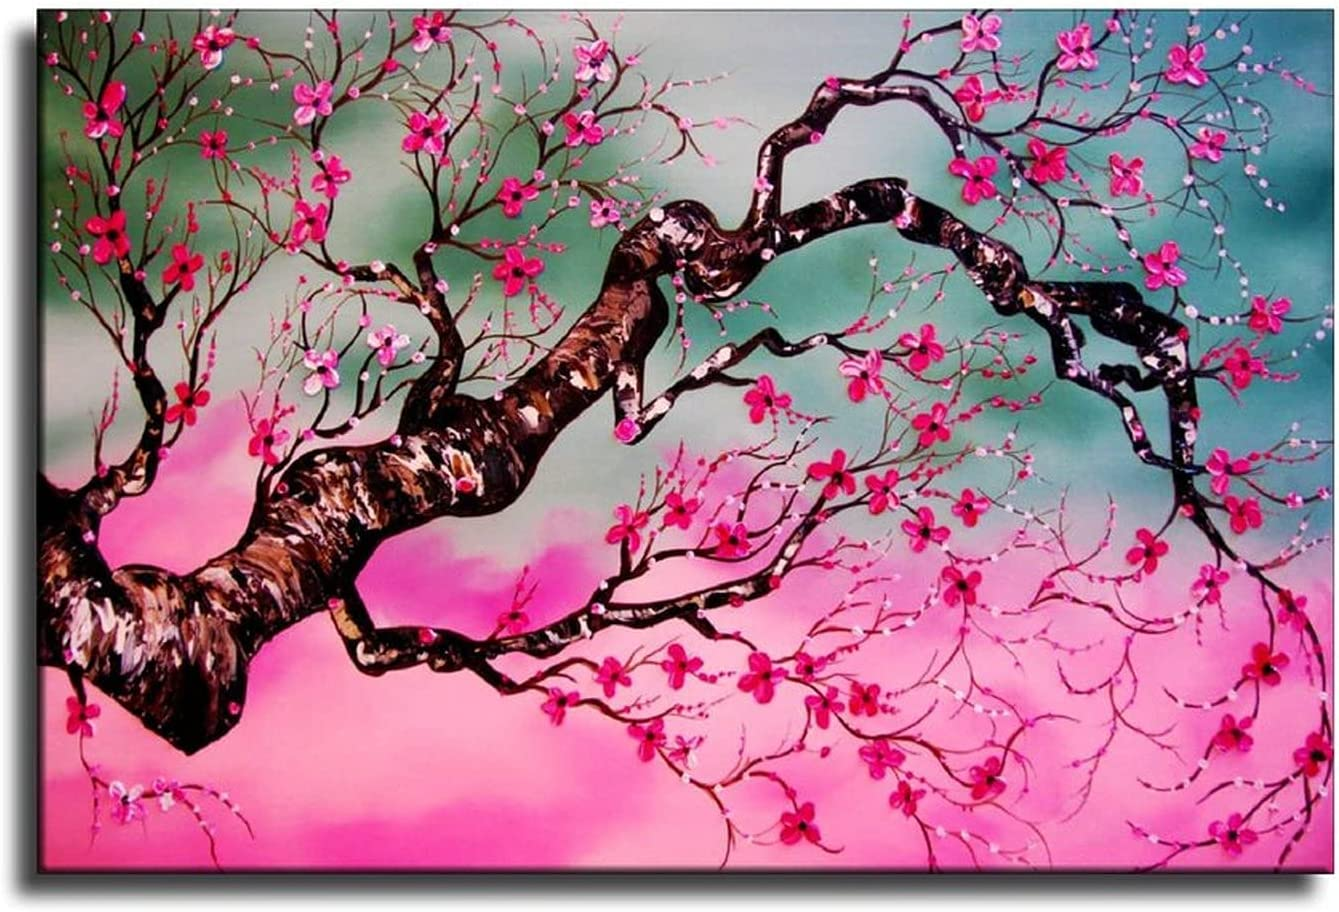 ATK Pink Cherry Blossom Painting Flower Courier shipping free shipping Art Wall Award-winning store Abstract